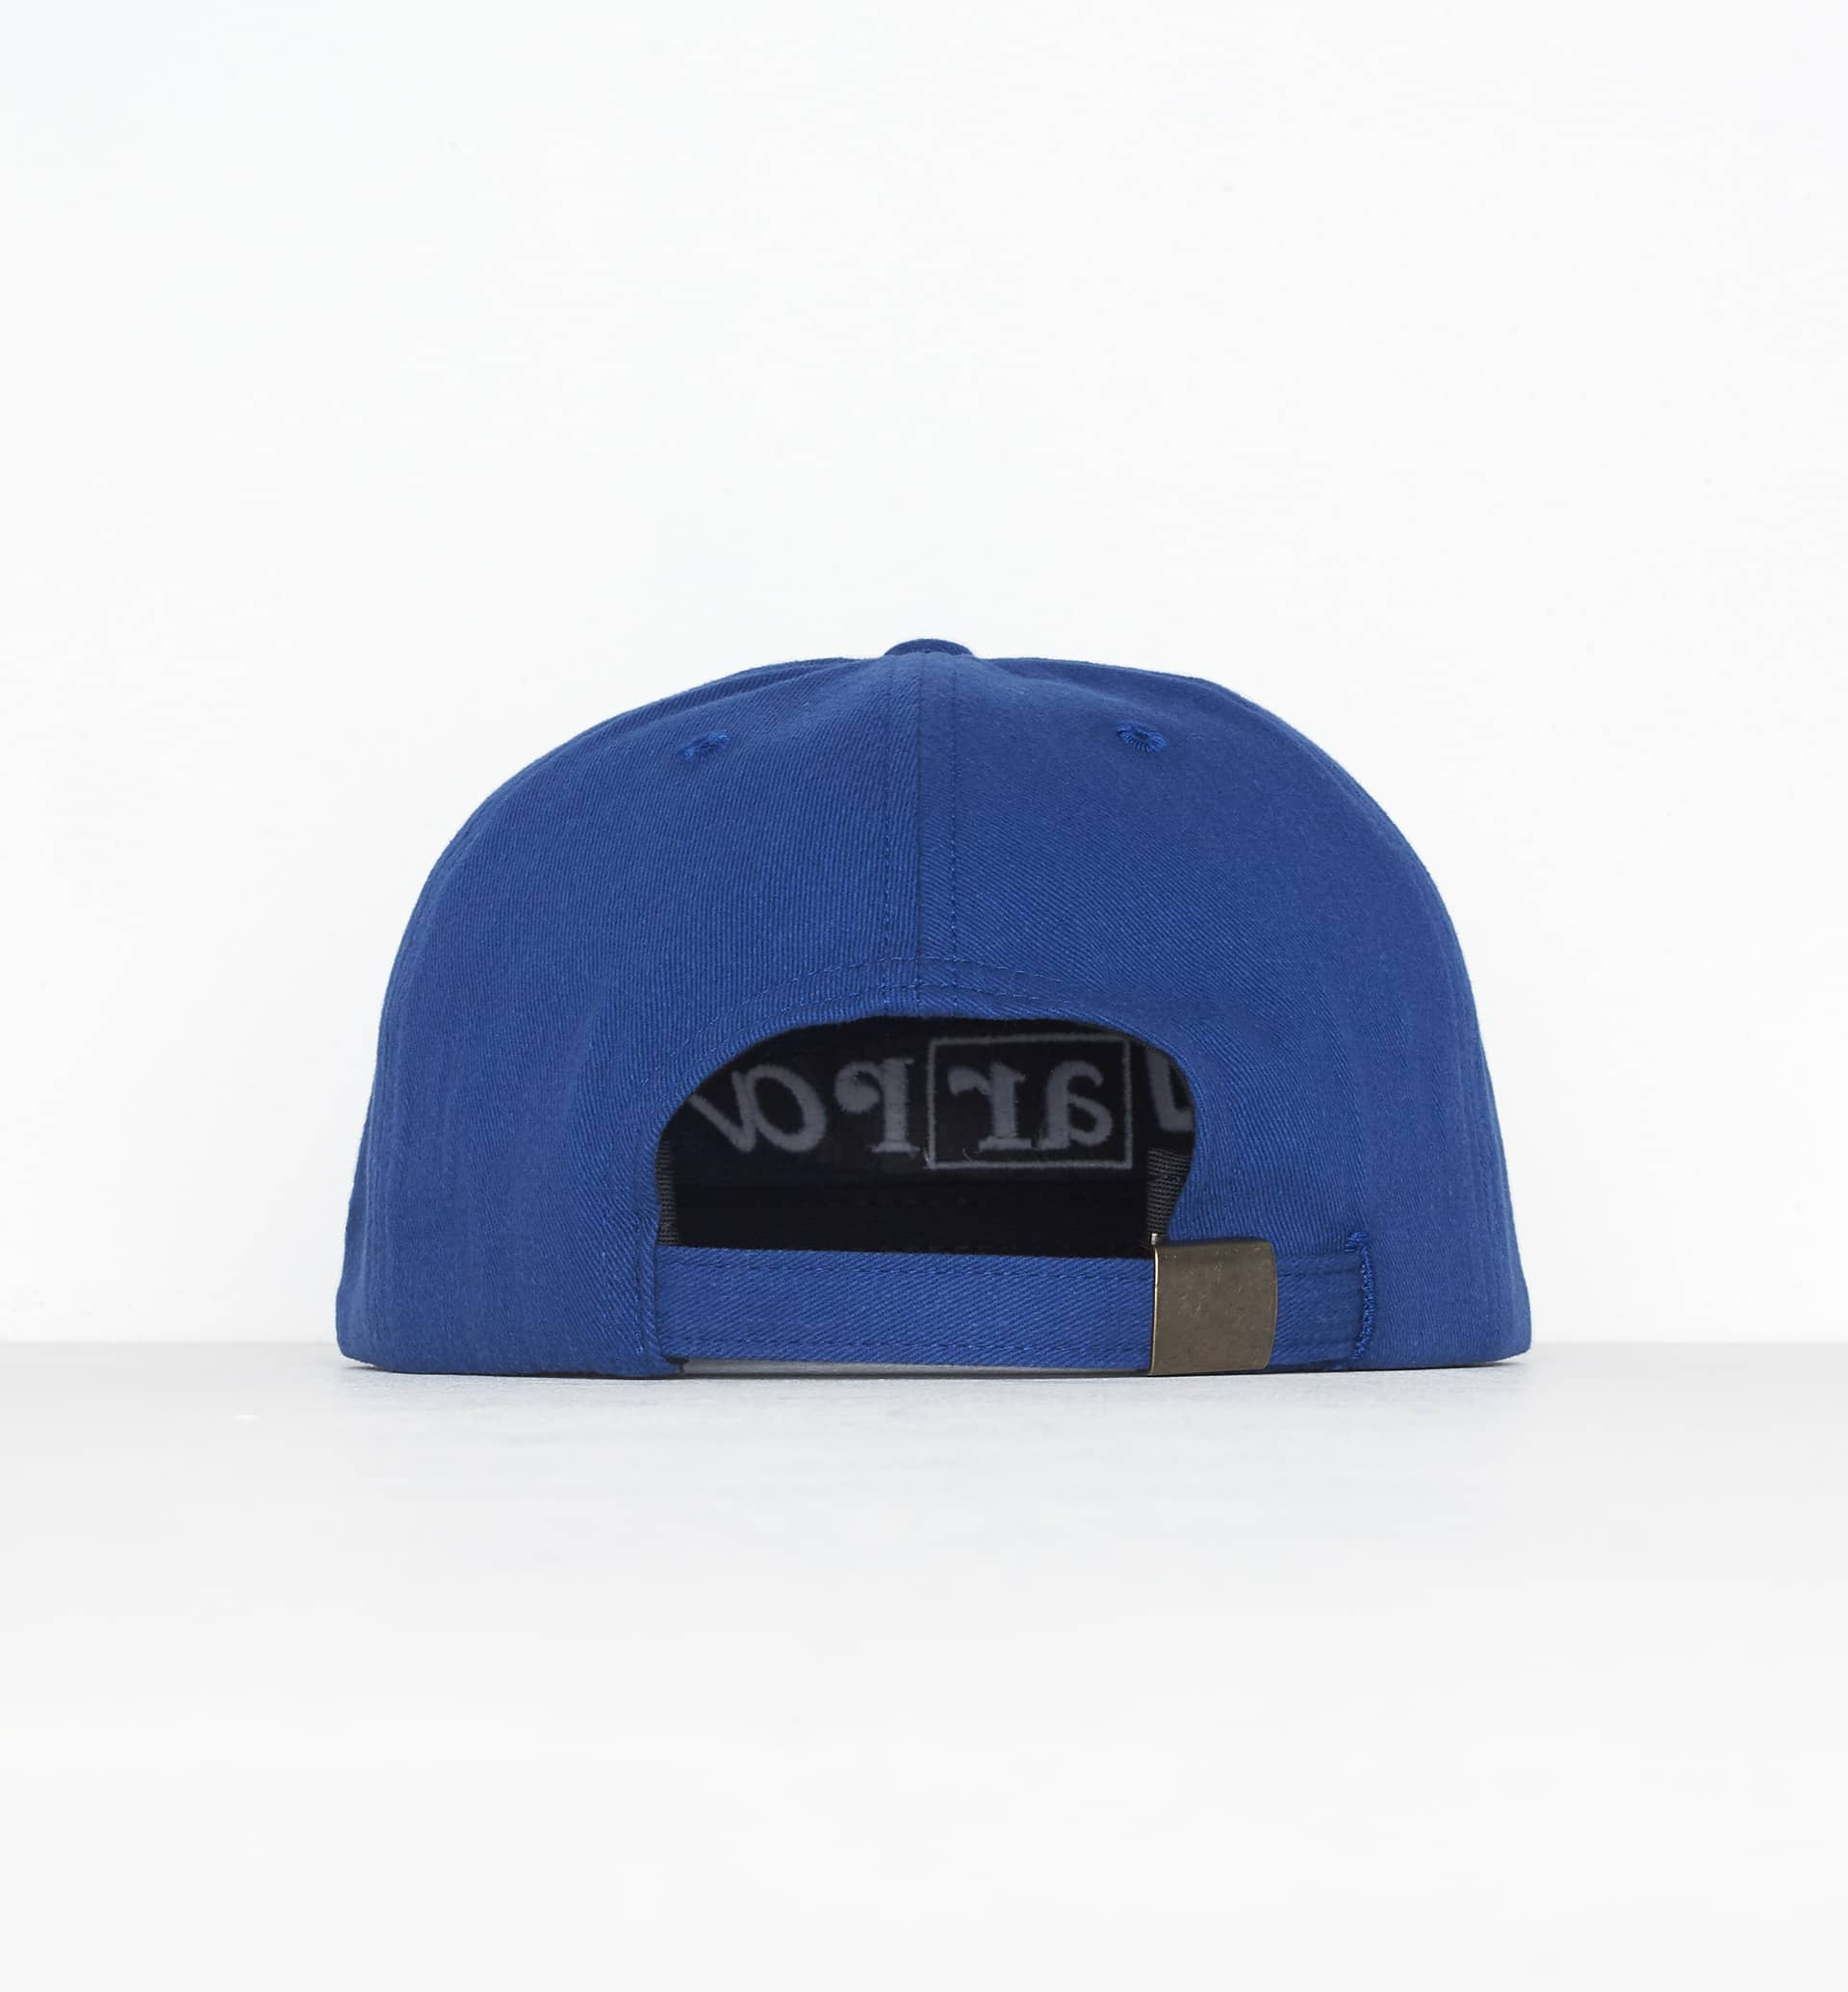 Parra - script box logo 5 panel hat